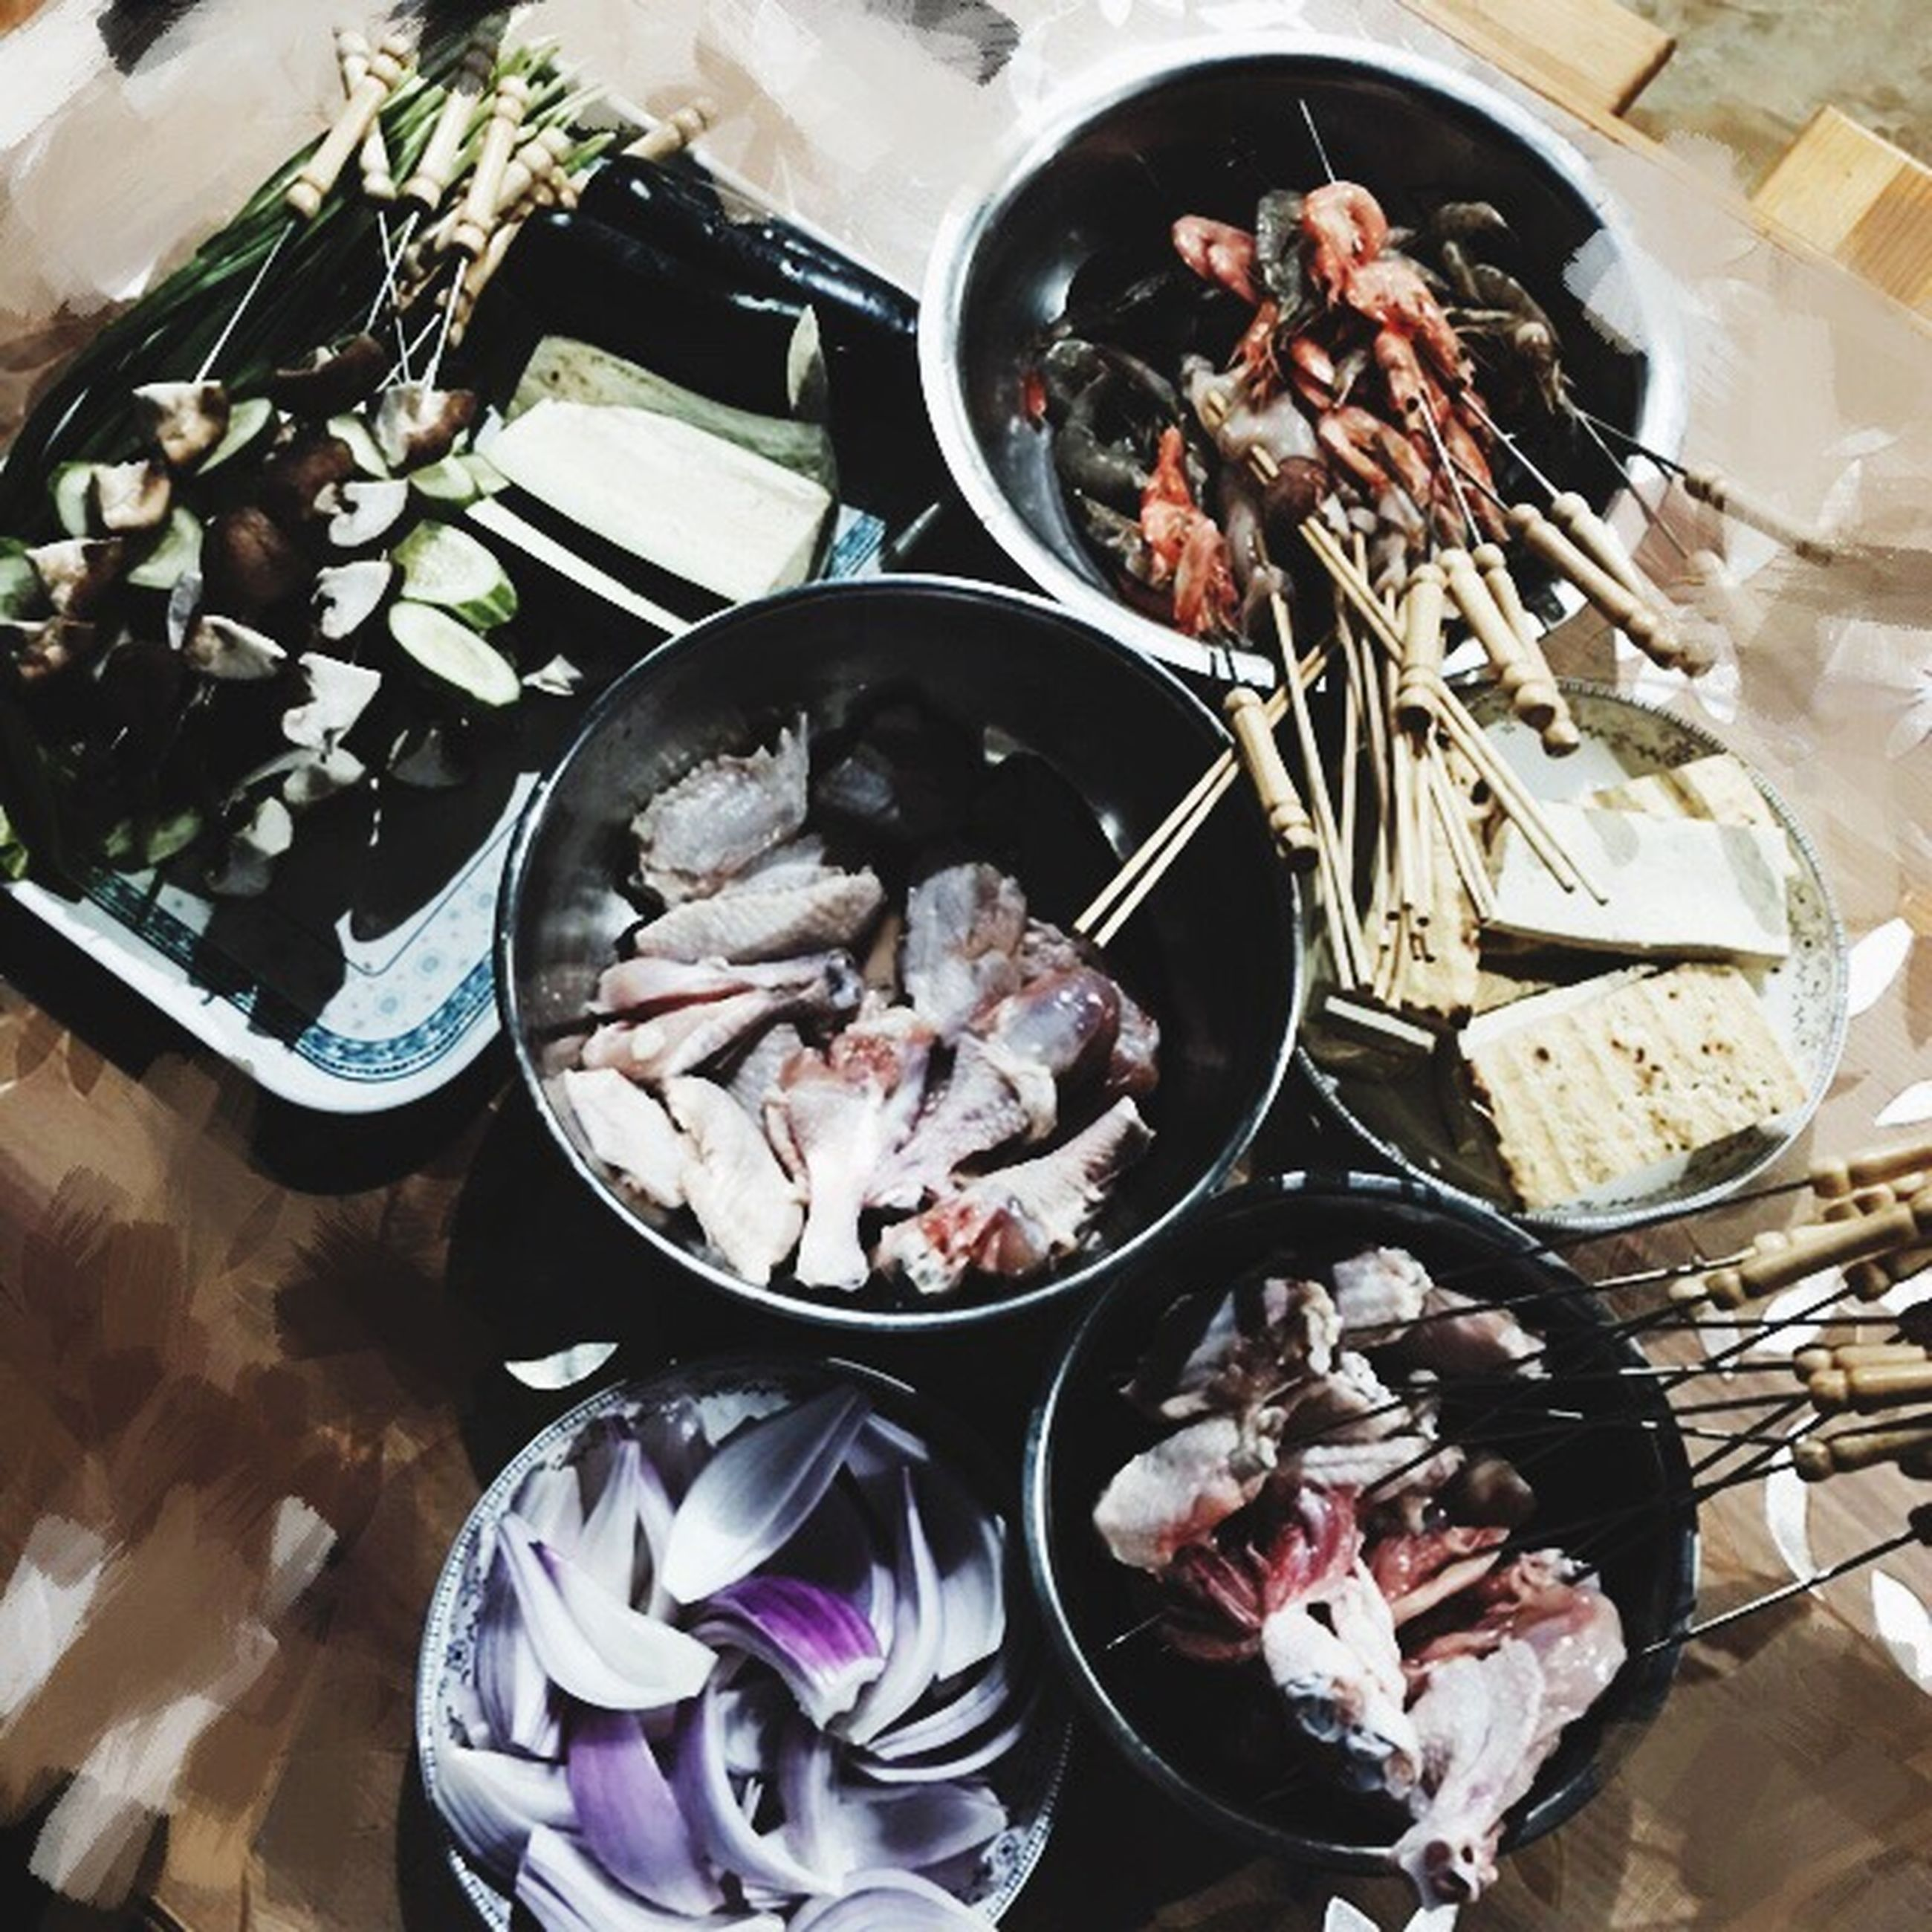 indoors, food and drink, freshness, food, high angle view, still life, variation, table, seafood, healthy eating, abundance, bowl, large group of objects, choice, flower, ready-to-eat, spoon, for sale, plate, preparation